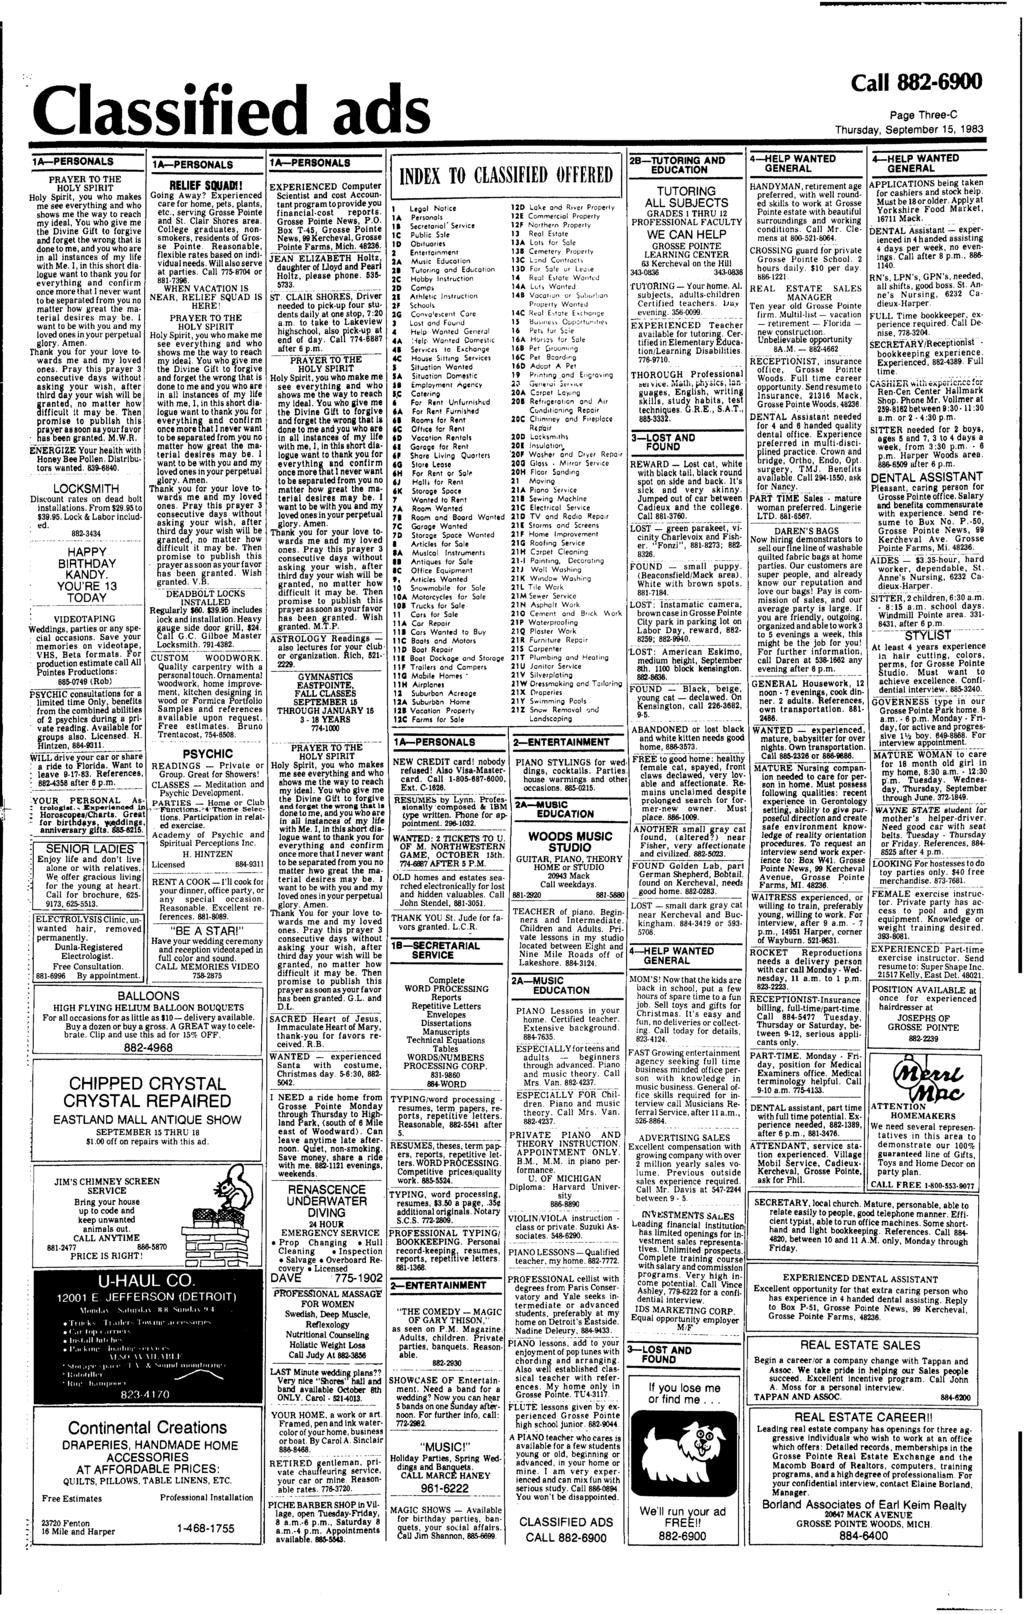 ----_...--_..._------.Classified ads Call 882.6900 Page Three-C Thursday, September 15, 1983 1A-PERSONALS 1A-PERSONALS PRA YER TO THE HOLY SPRT RELEF SQUADf Holy Spirit, you who makes GOing Away?